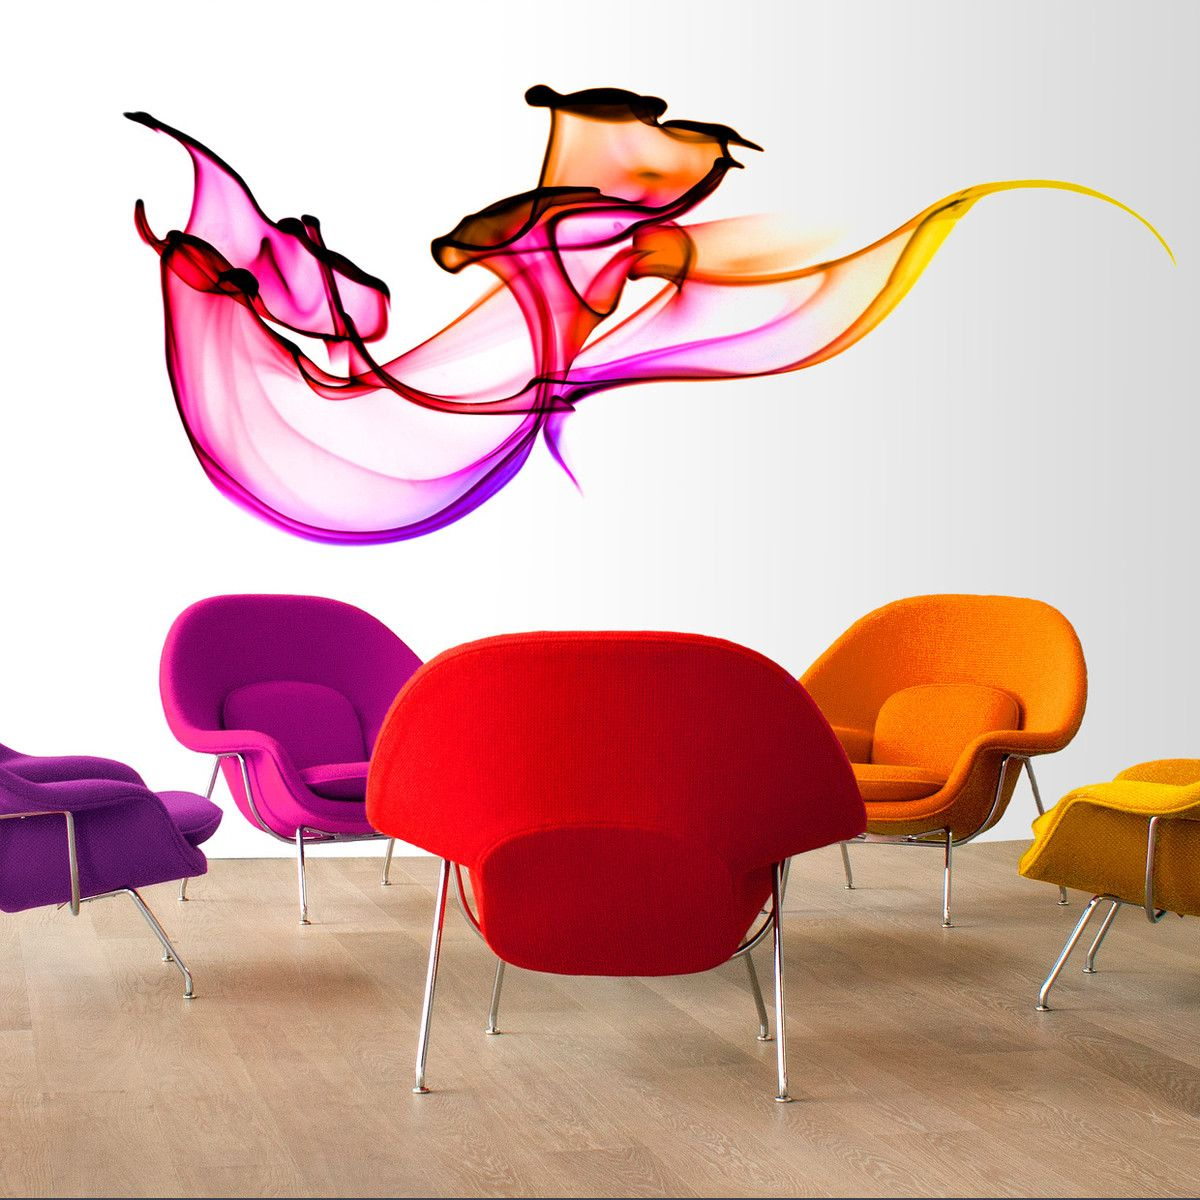 #PRO | #Salle_d_attente #Waiting_room | #Decoration_interieur #Interior_design  [Swirling Dyes Wall Decal]